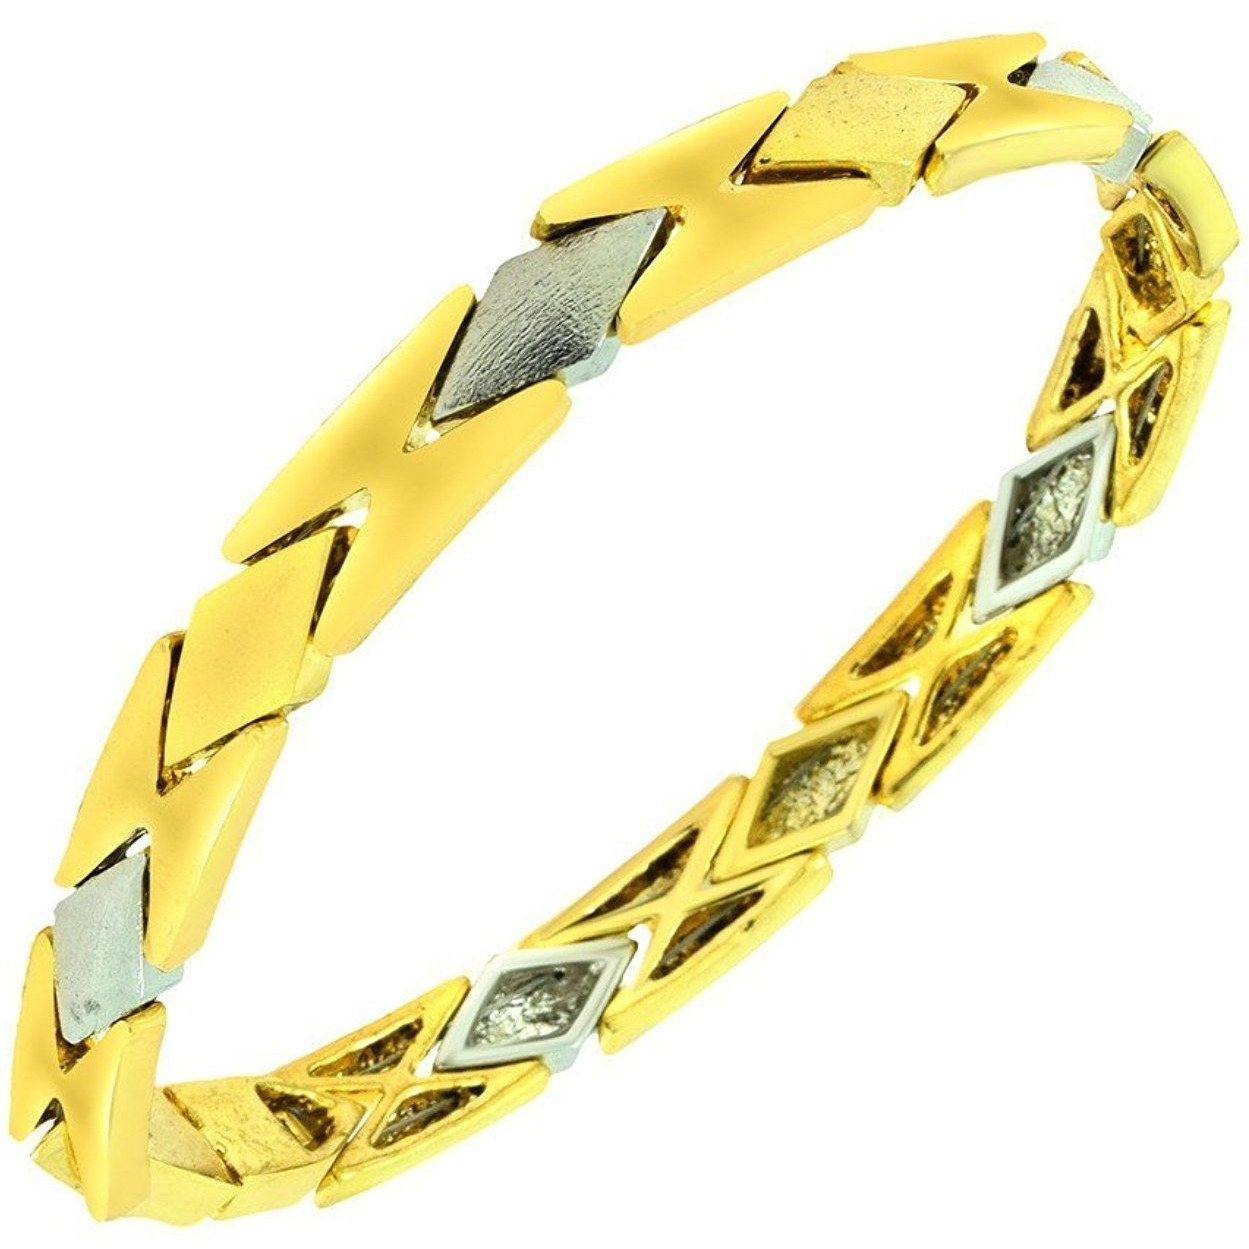 Zivom 3D Geometric 22K Brush Gold Plated Bracelet For Women